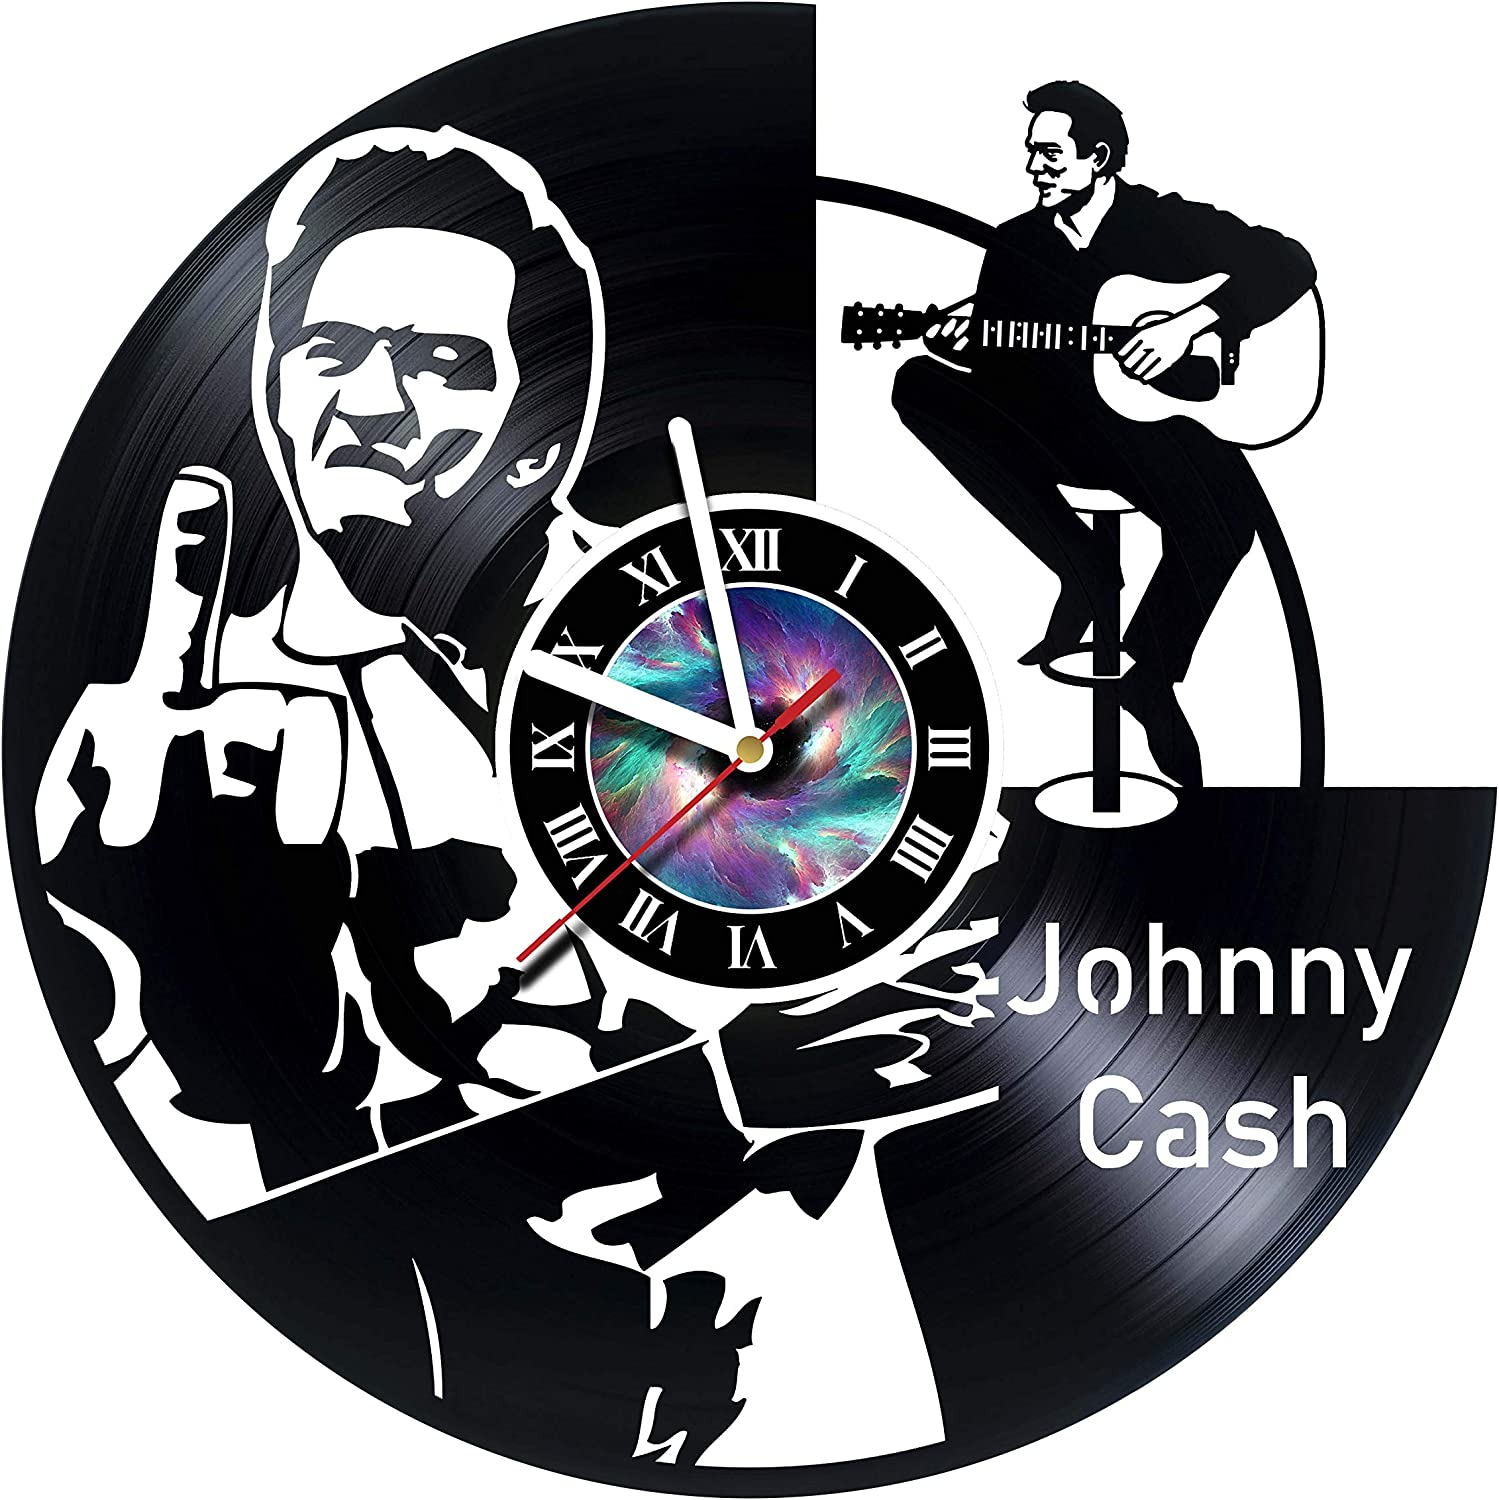 Amazon Com Steparthouse Johnny Cash Handmade Vinyl Wall Clock Get Unique Gifts Presents For Birthday Christmas Ideas For Boys Girls Men Women Adults Him And Her Unique Design Home Kitchen